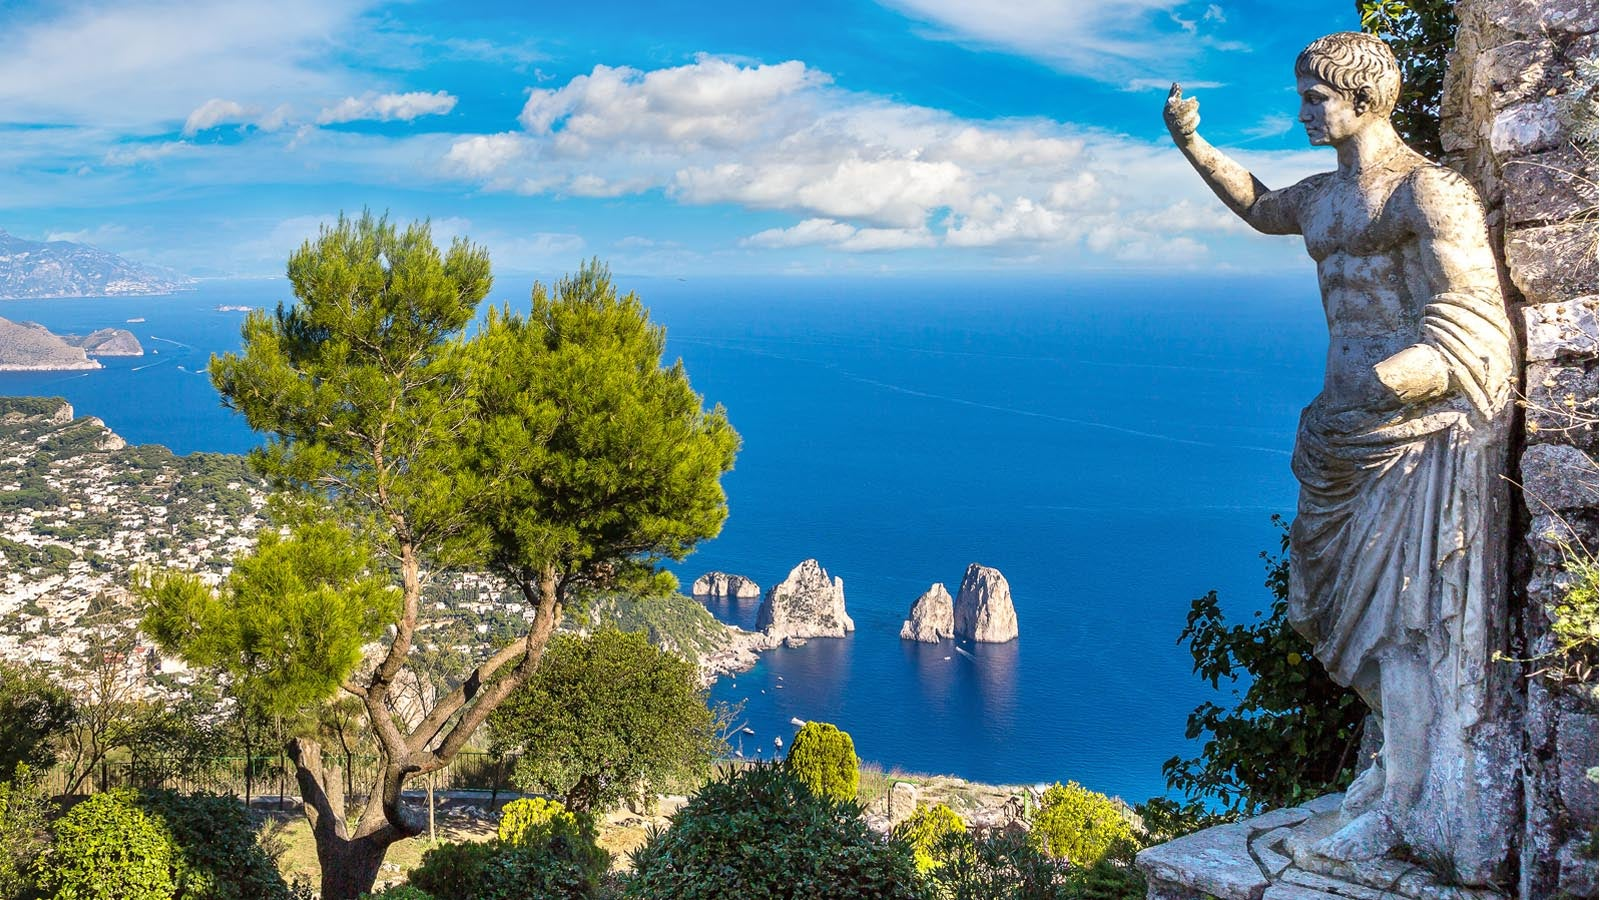 A statue overlooking the ocean in Italy.